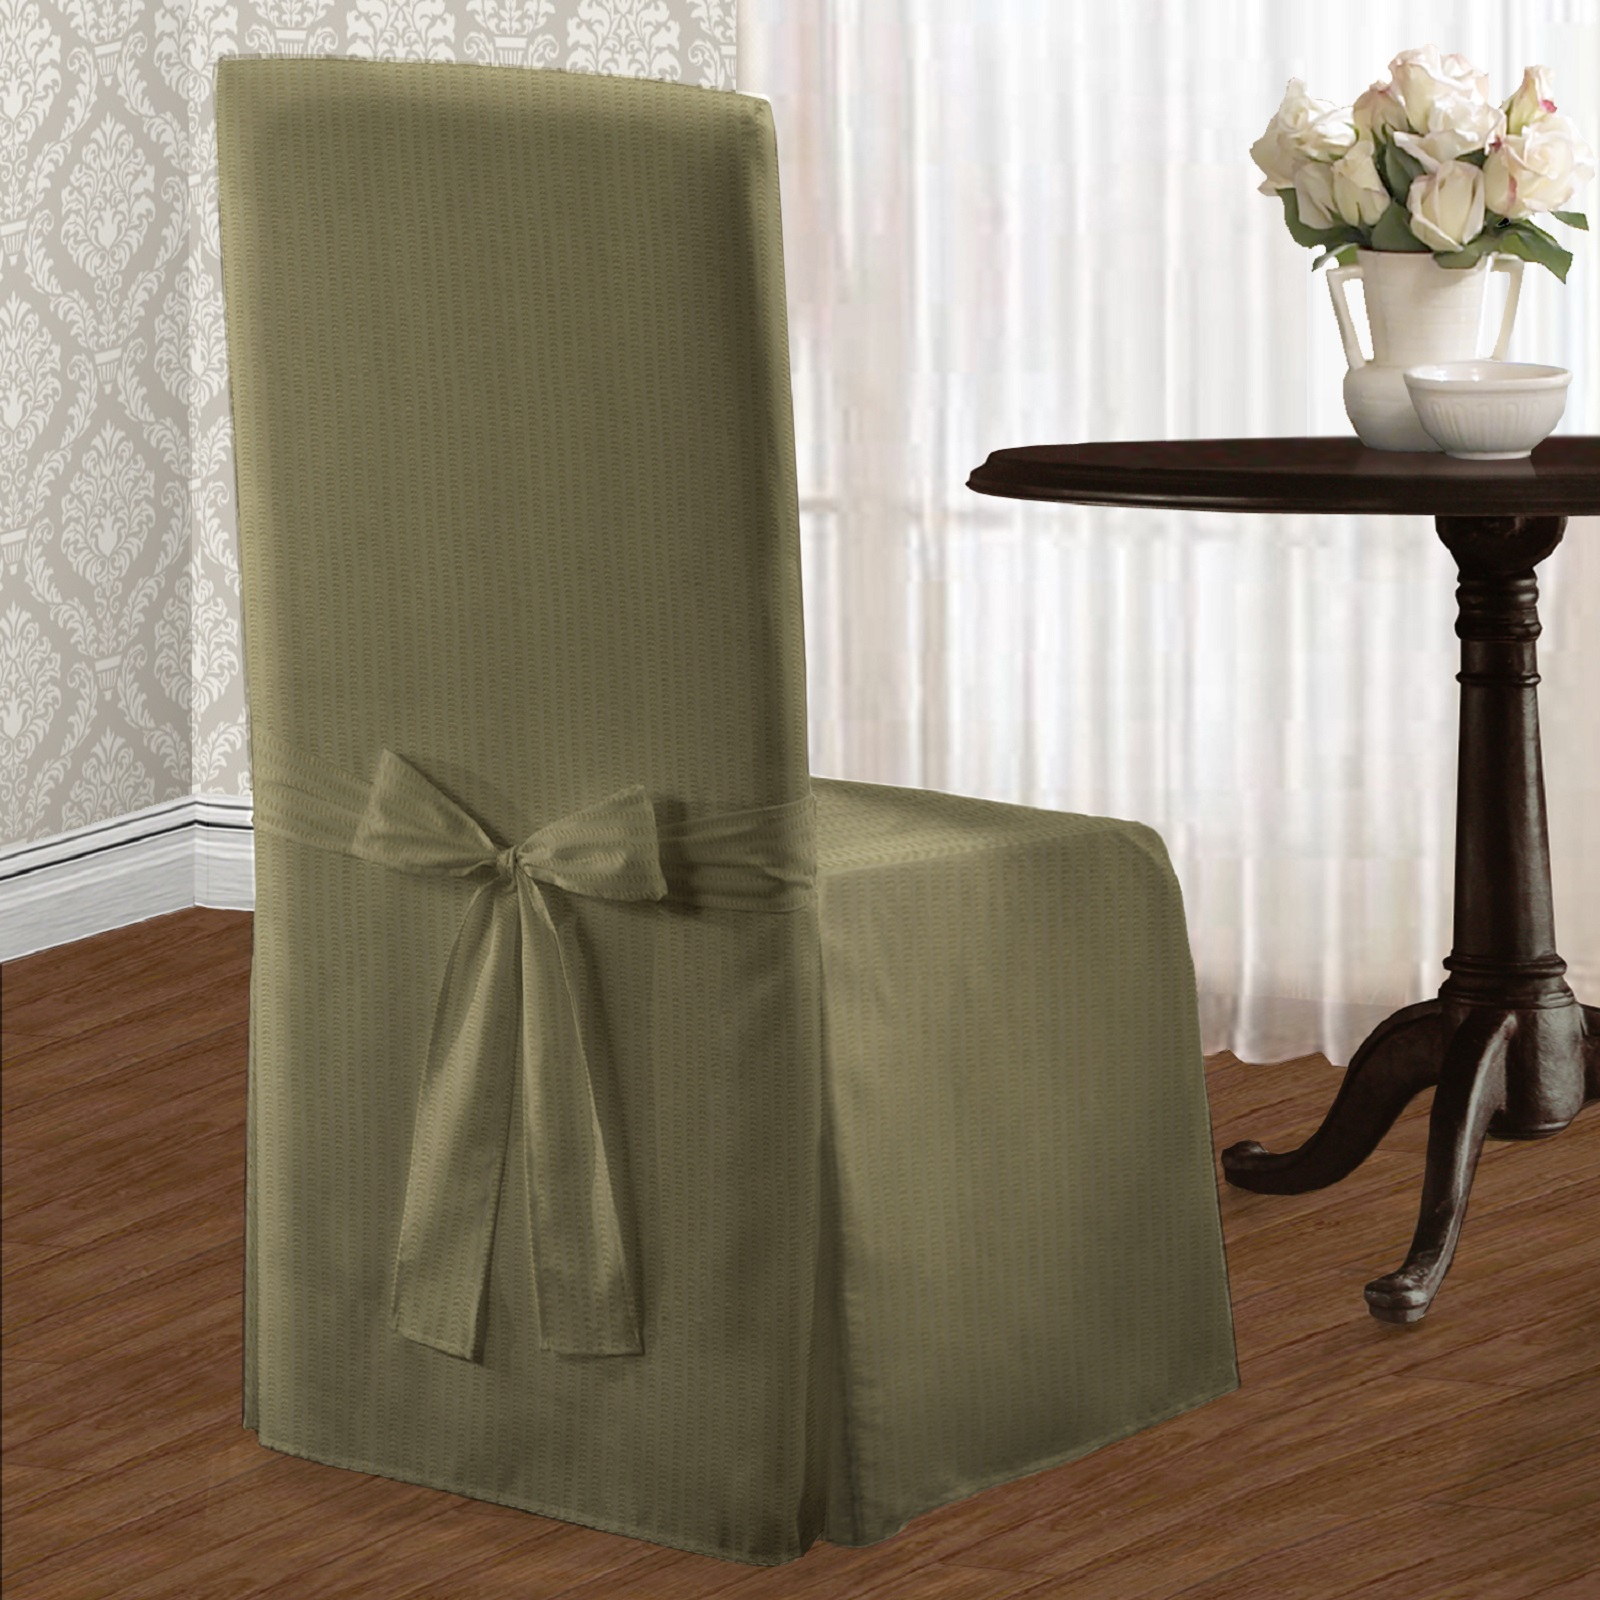 United Curtain Company Metro Woven Tone on Tone Stripe Dining Chair Cover PartNumber: 3ZZVA69522212P MfgPartNumber: DRCMET